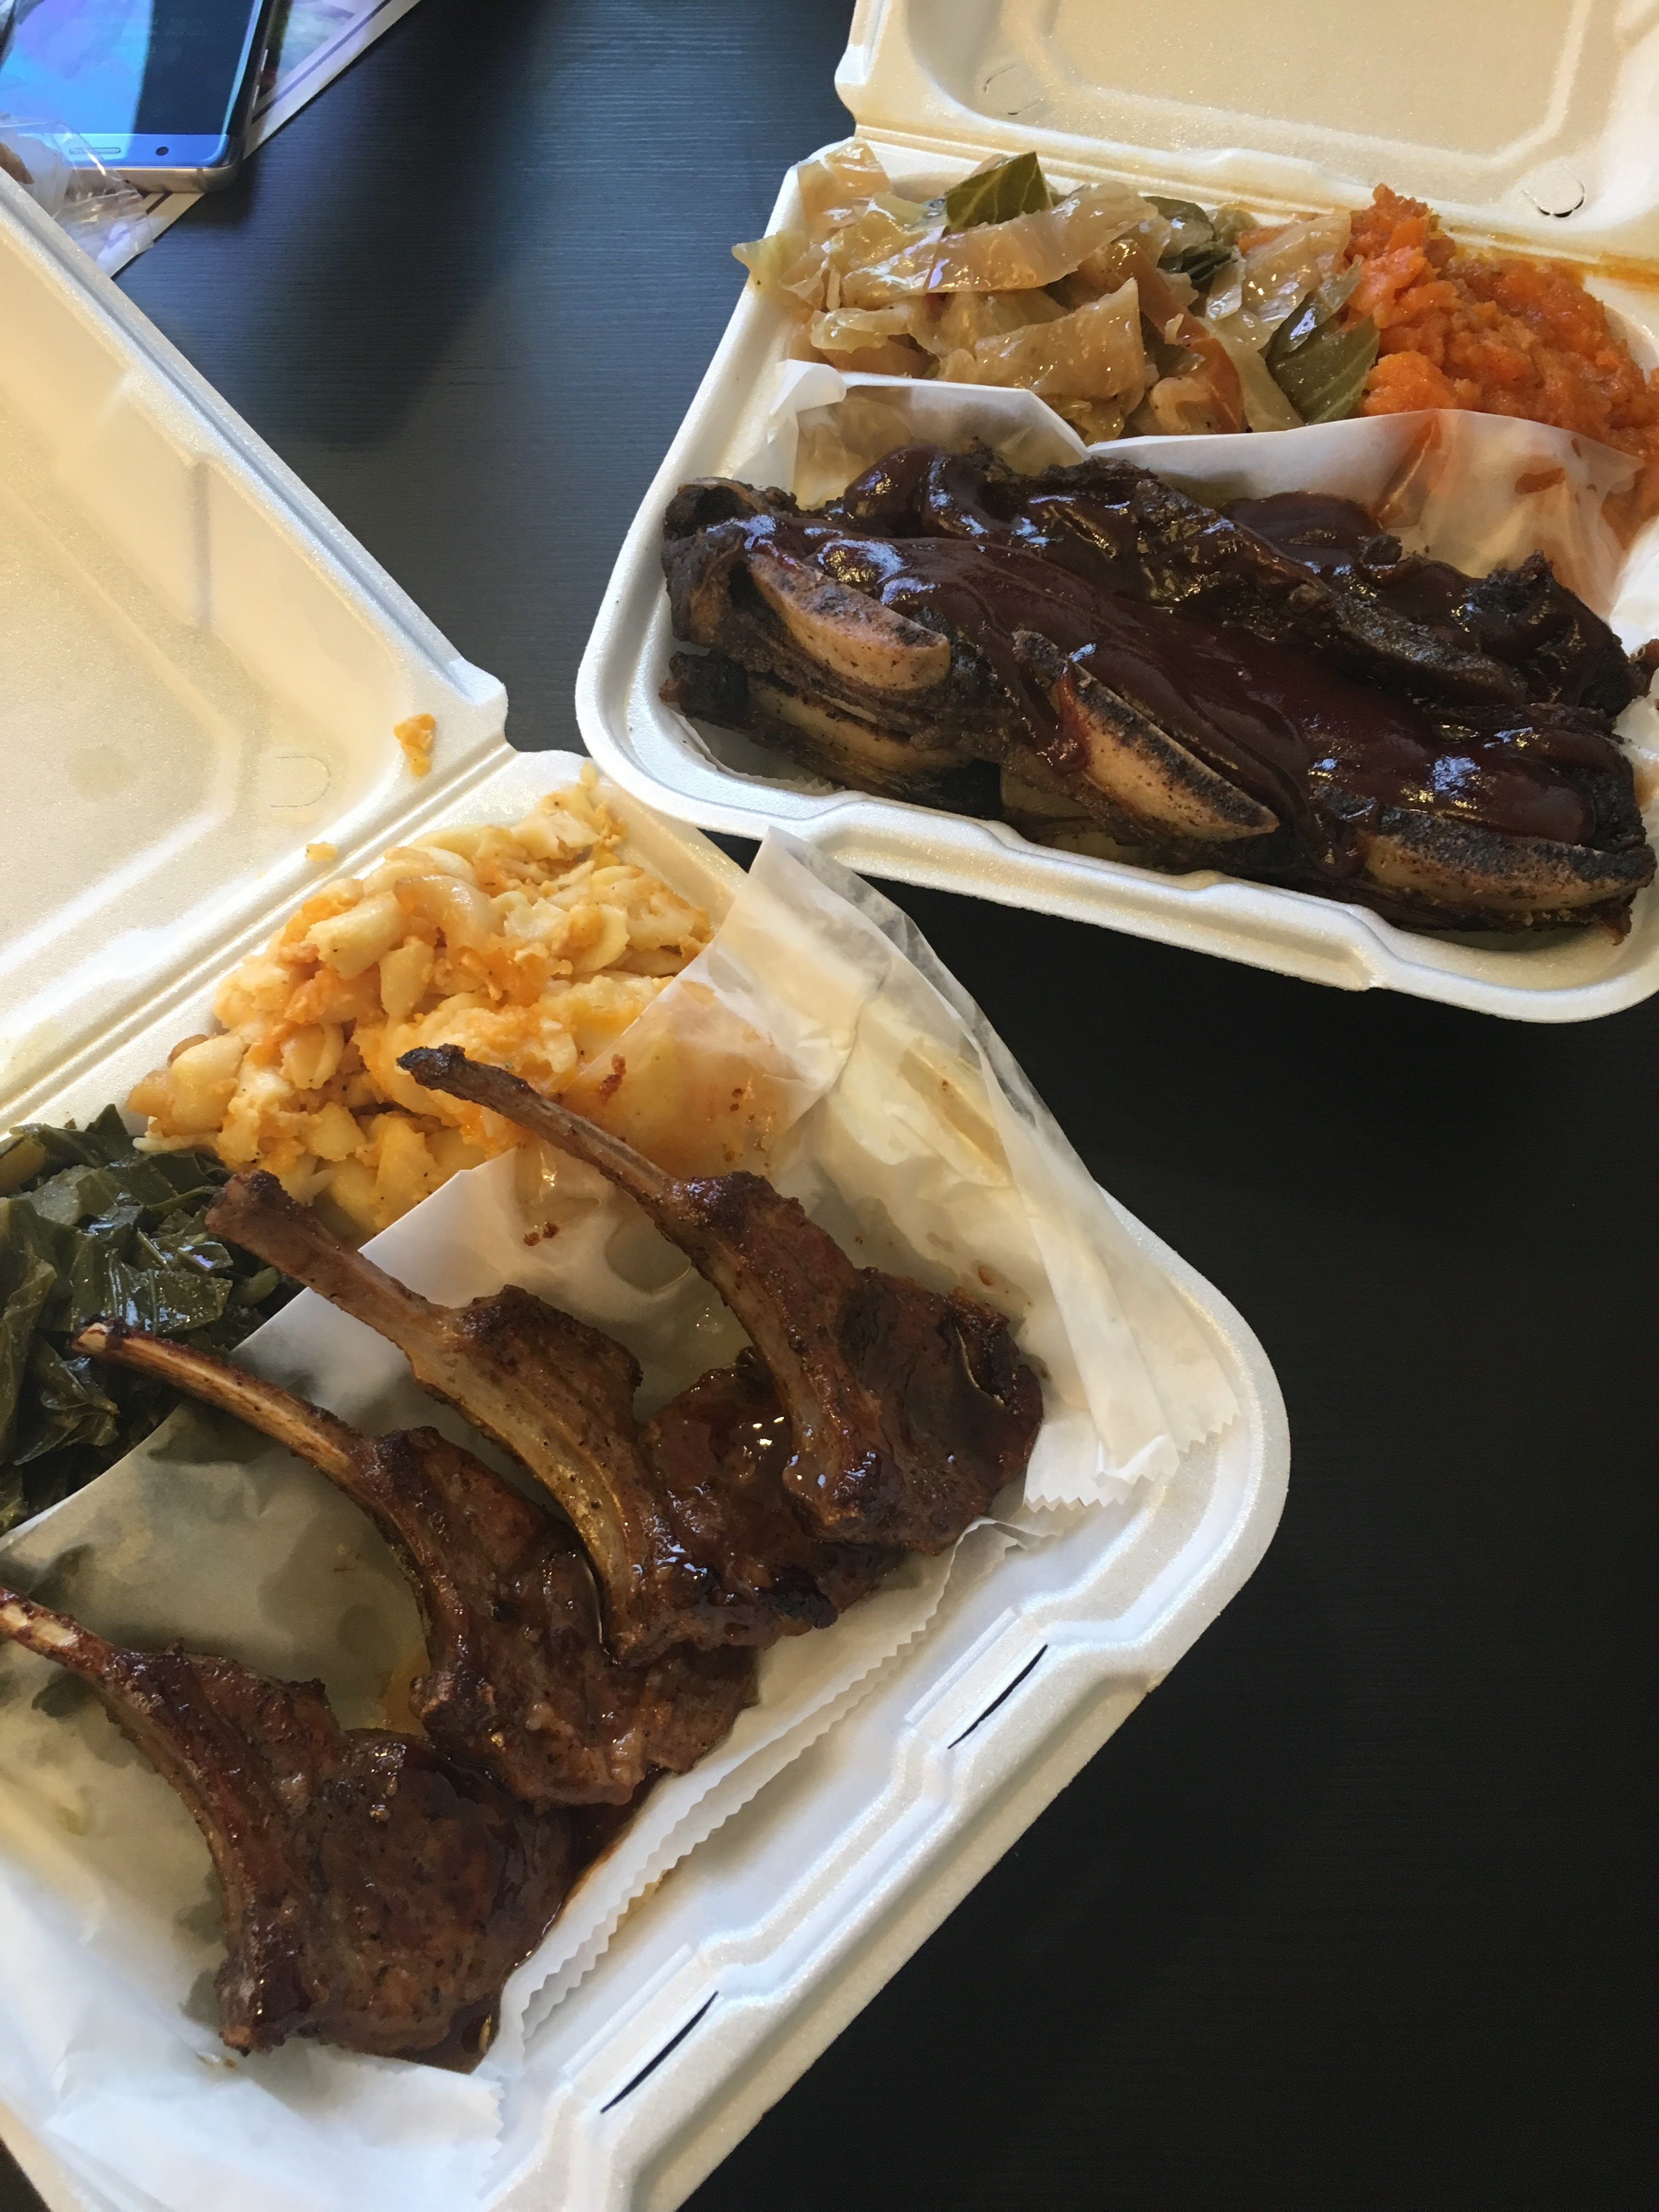 Lamb chops and short ribs from Crafty Soul. Best soul food in West Philly.